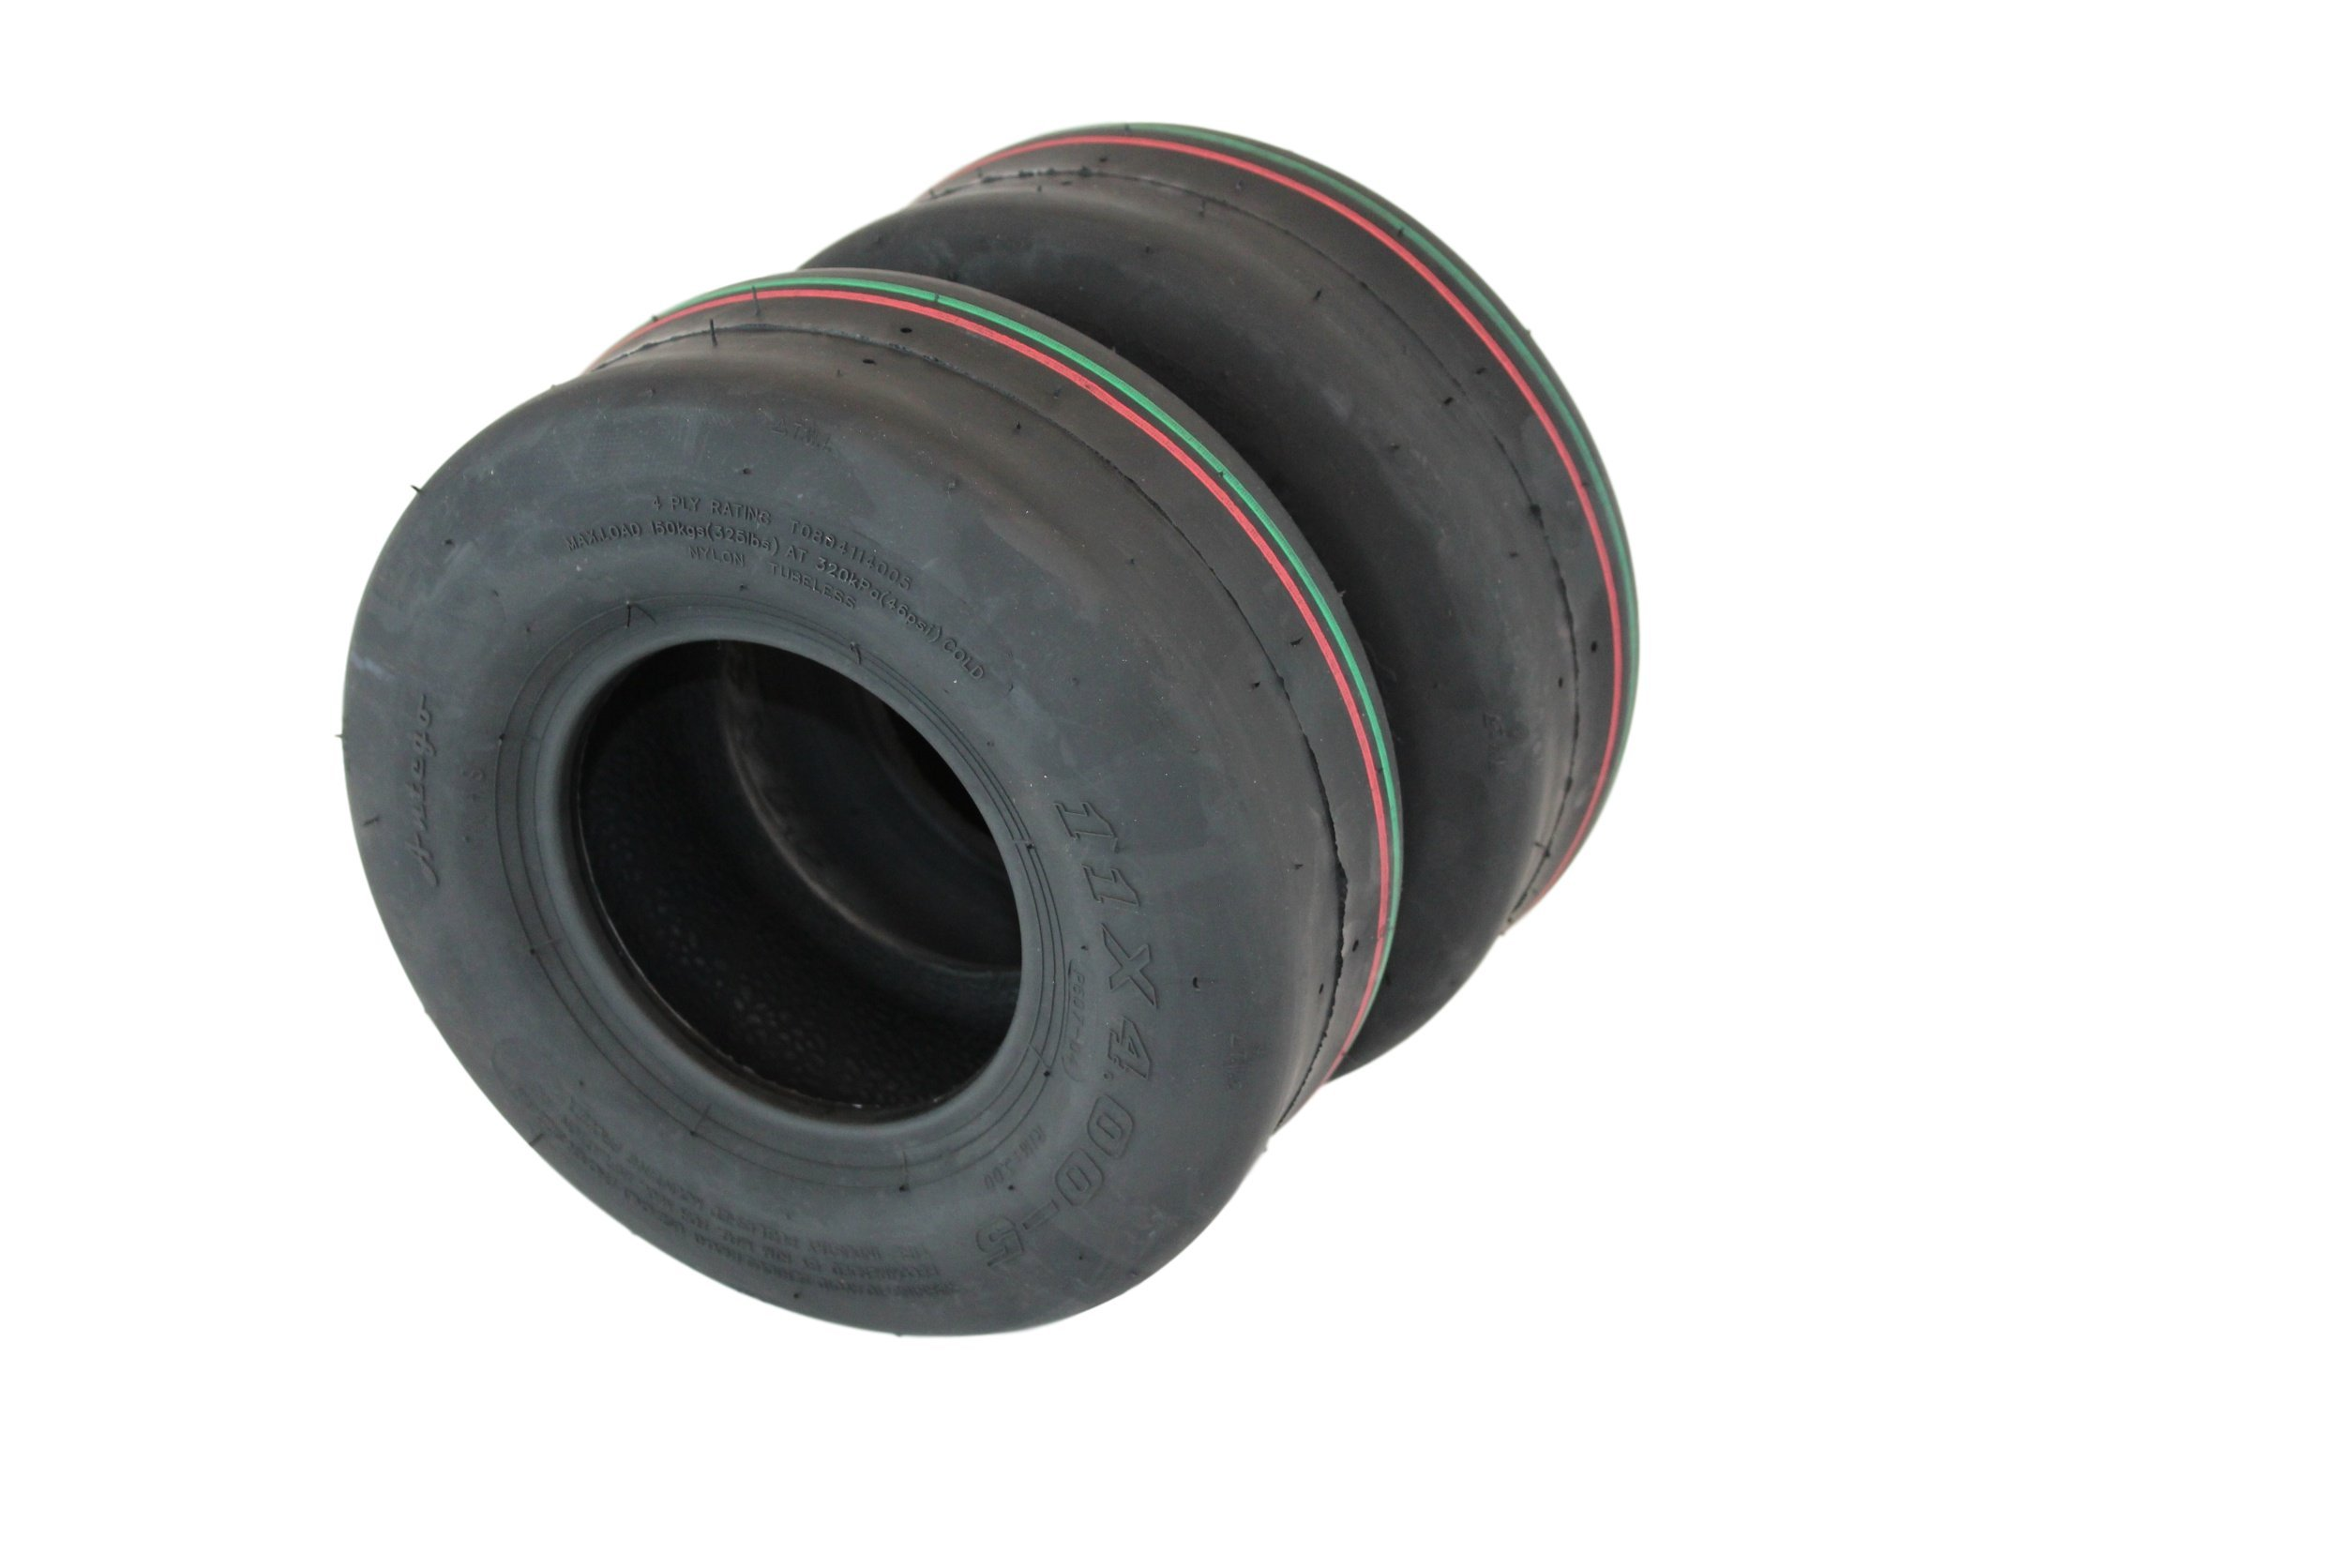 Set of Two 11x4.00-5 4 Ply Turf Tires for Lawn & Garden Mower 11x4-5